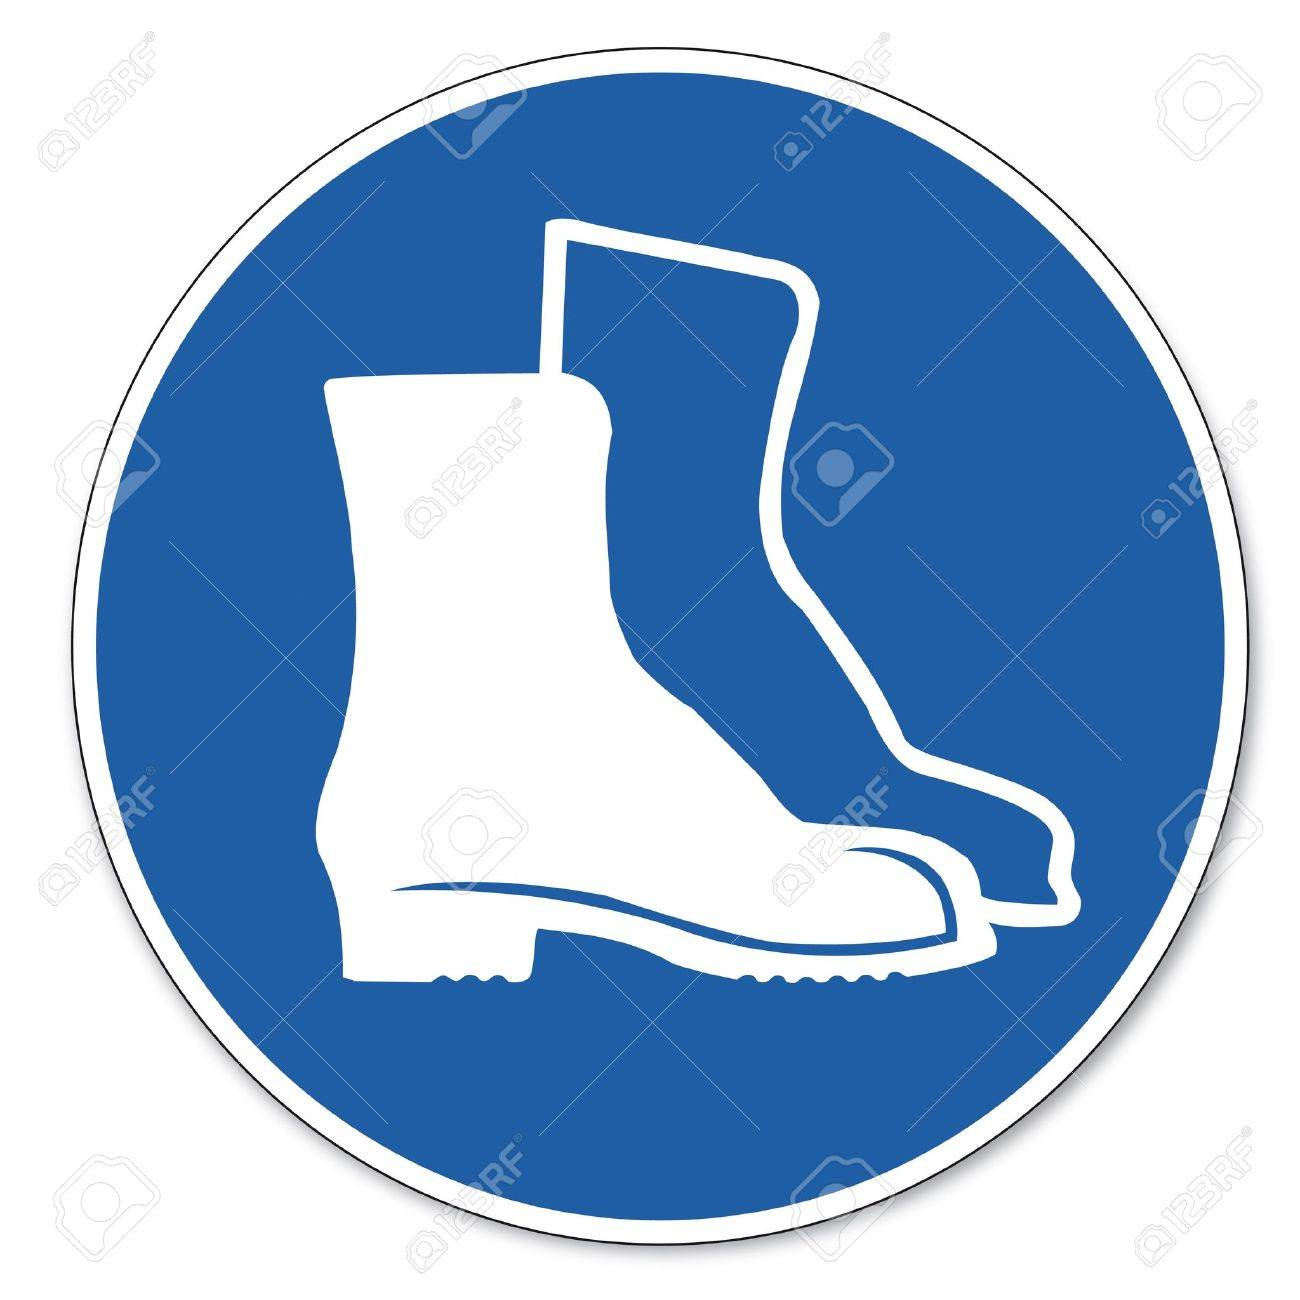 Commanded sign safety sign pictogram occupational safety sign Foot use shoe - 14646068